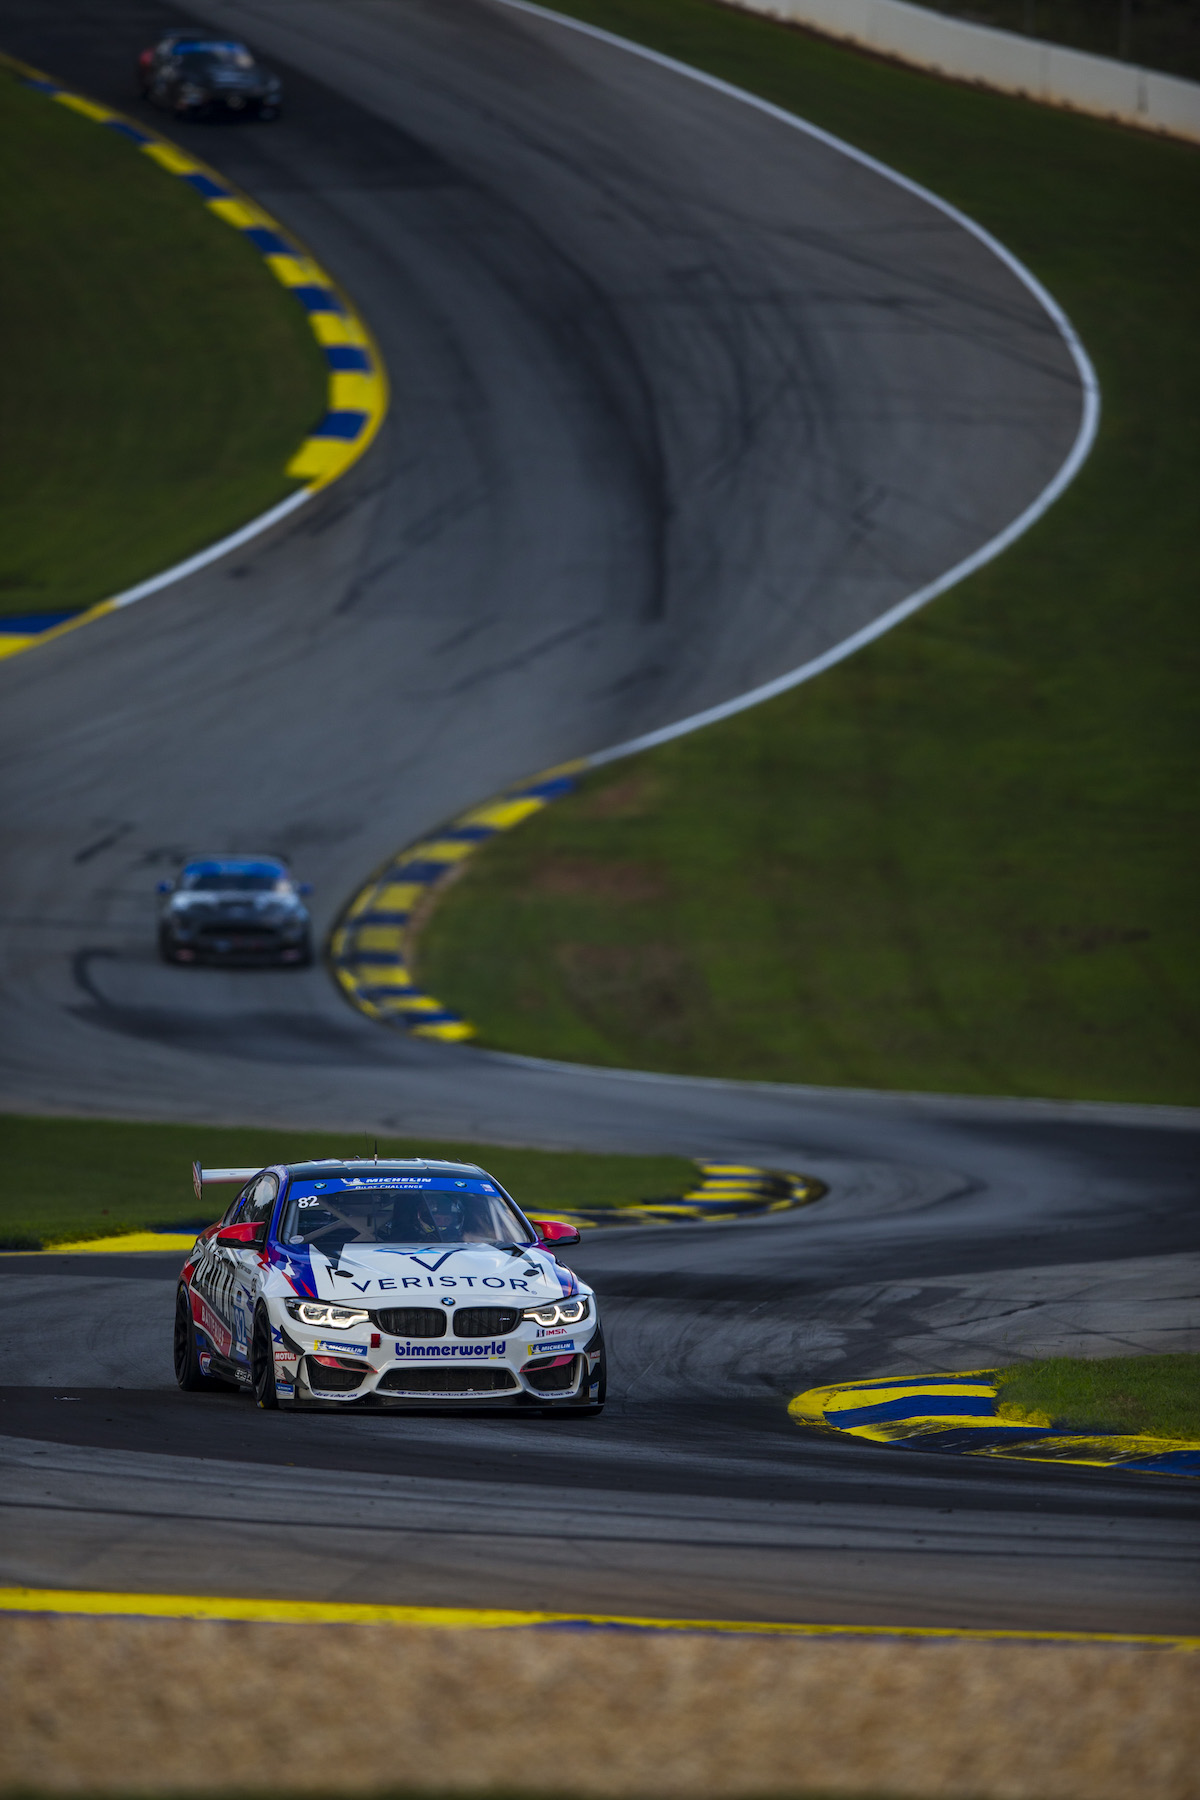 BimmerWorld No. 82 down the esses at Road Atlanta